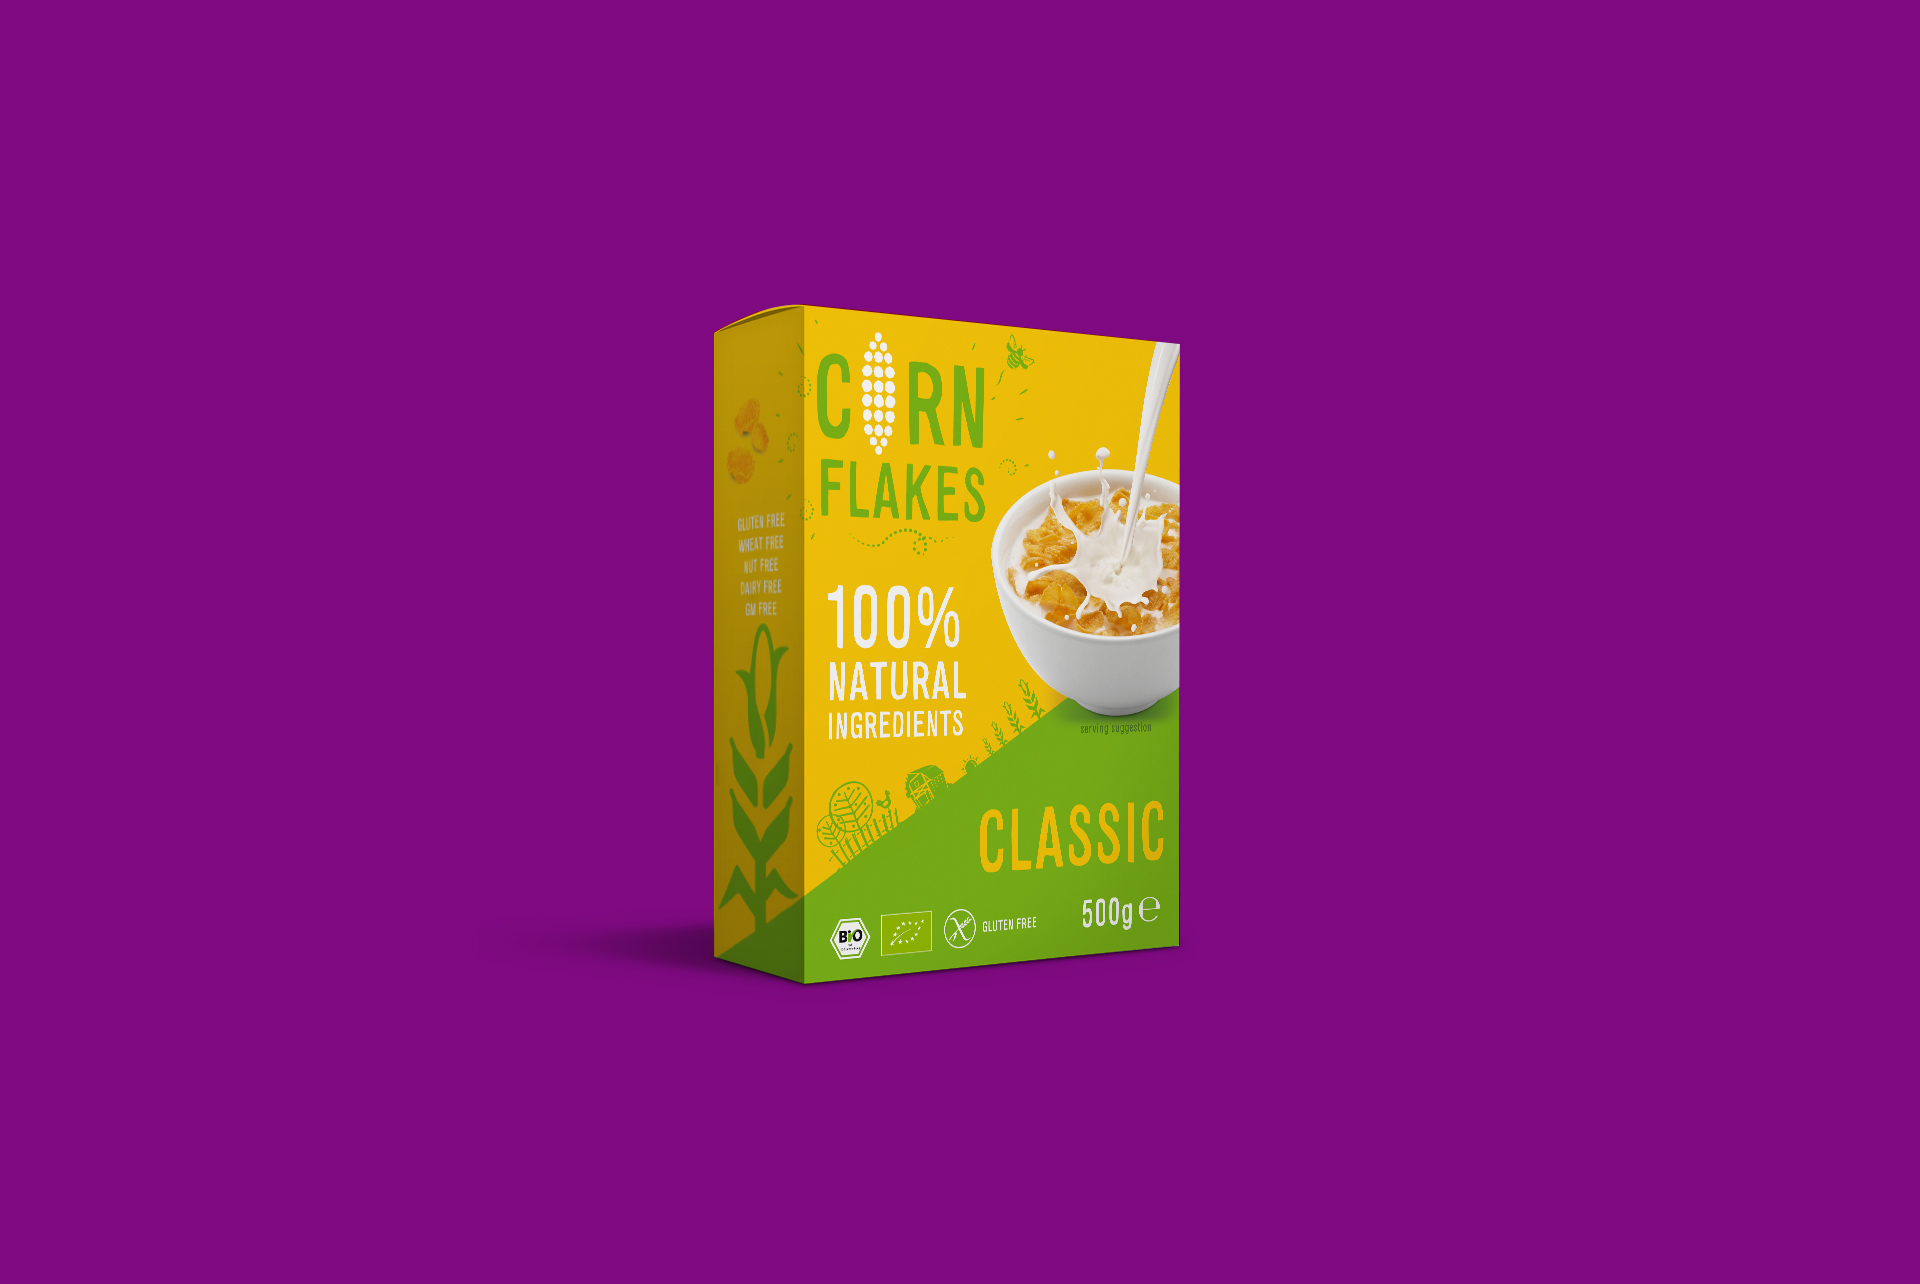 Corn Flakes Classic Packaging Design